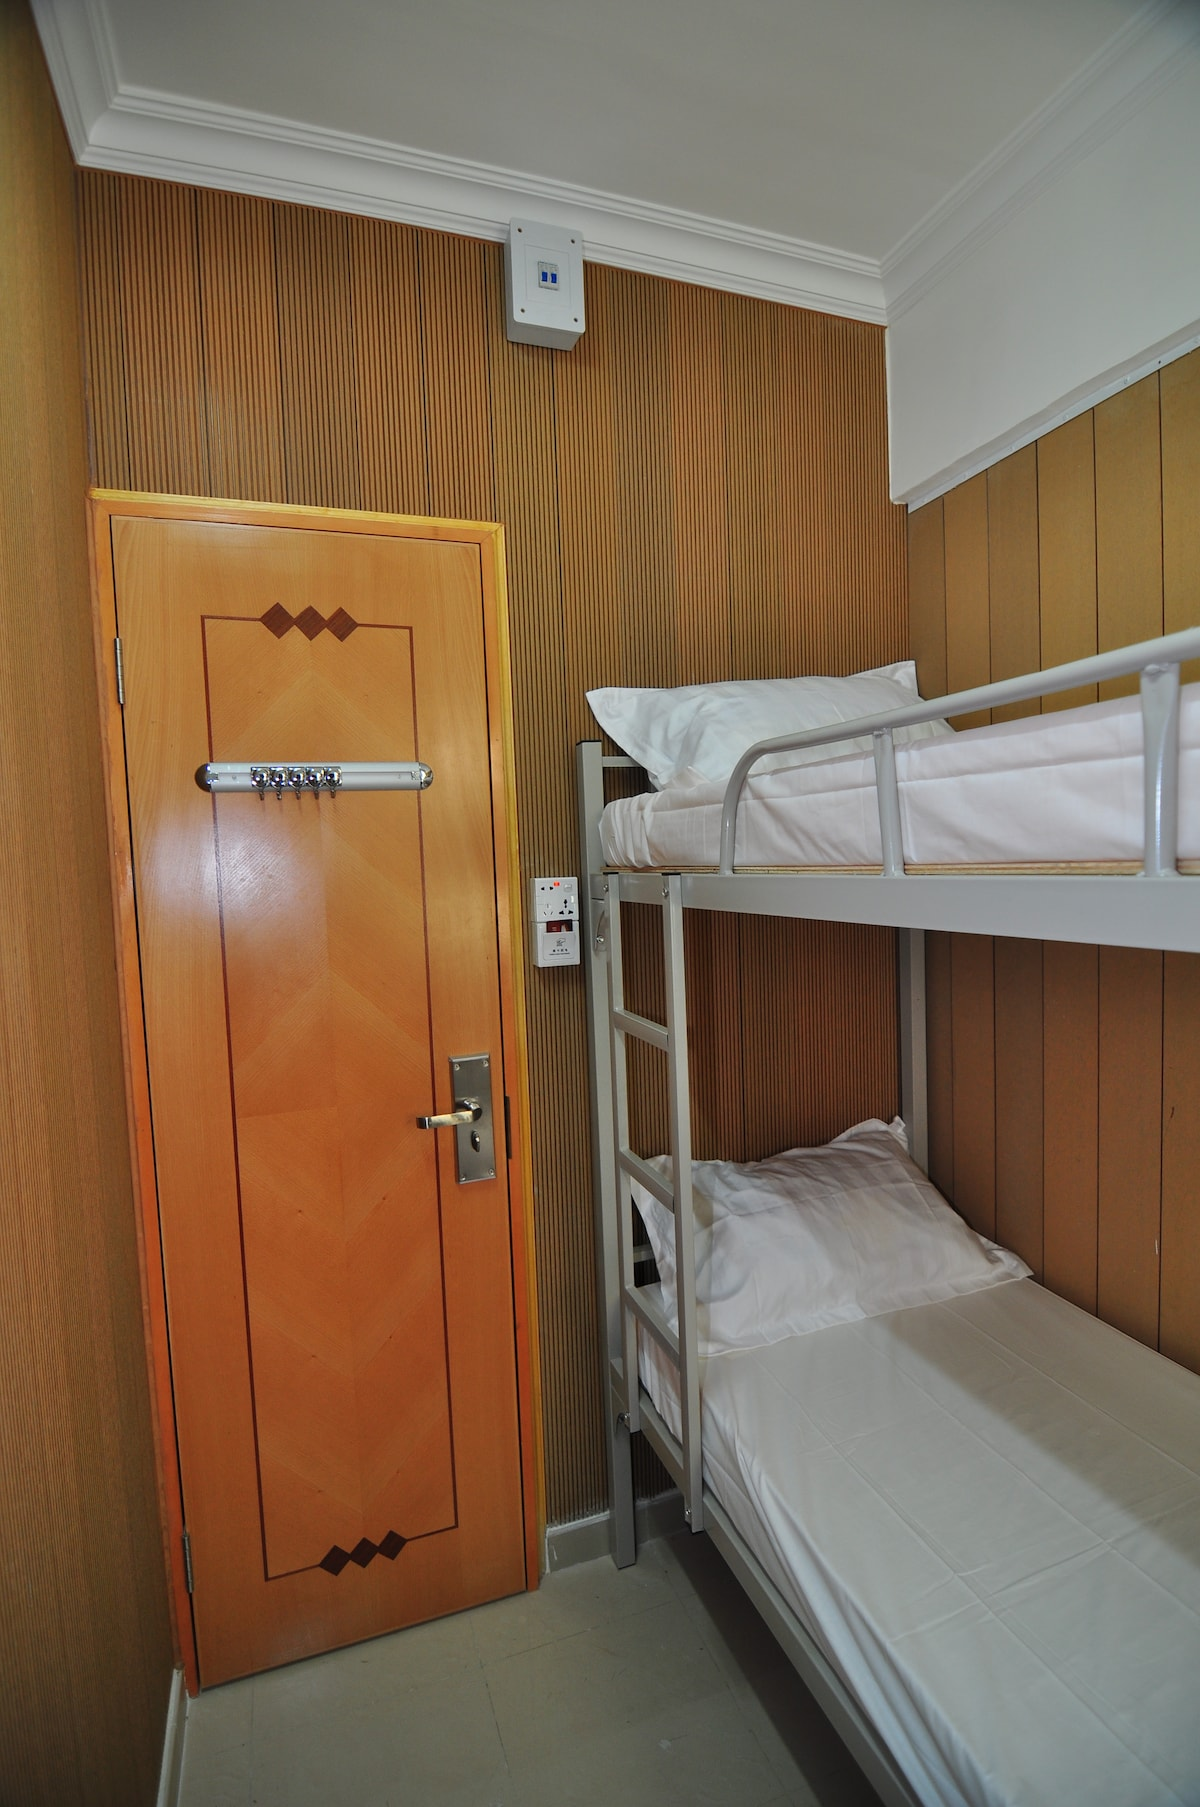 2 persons room